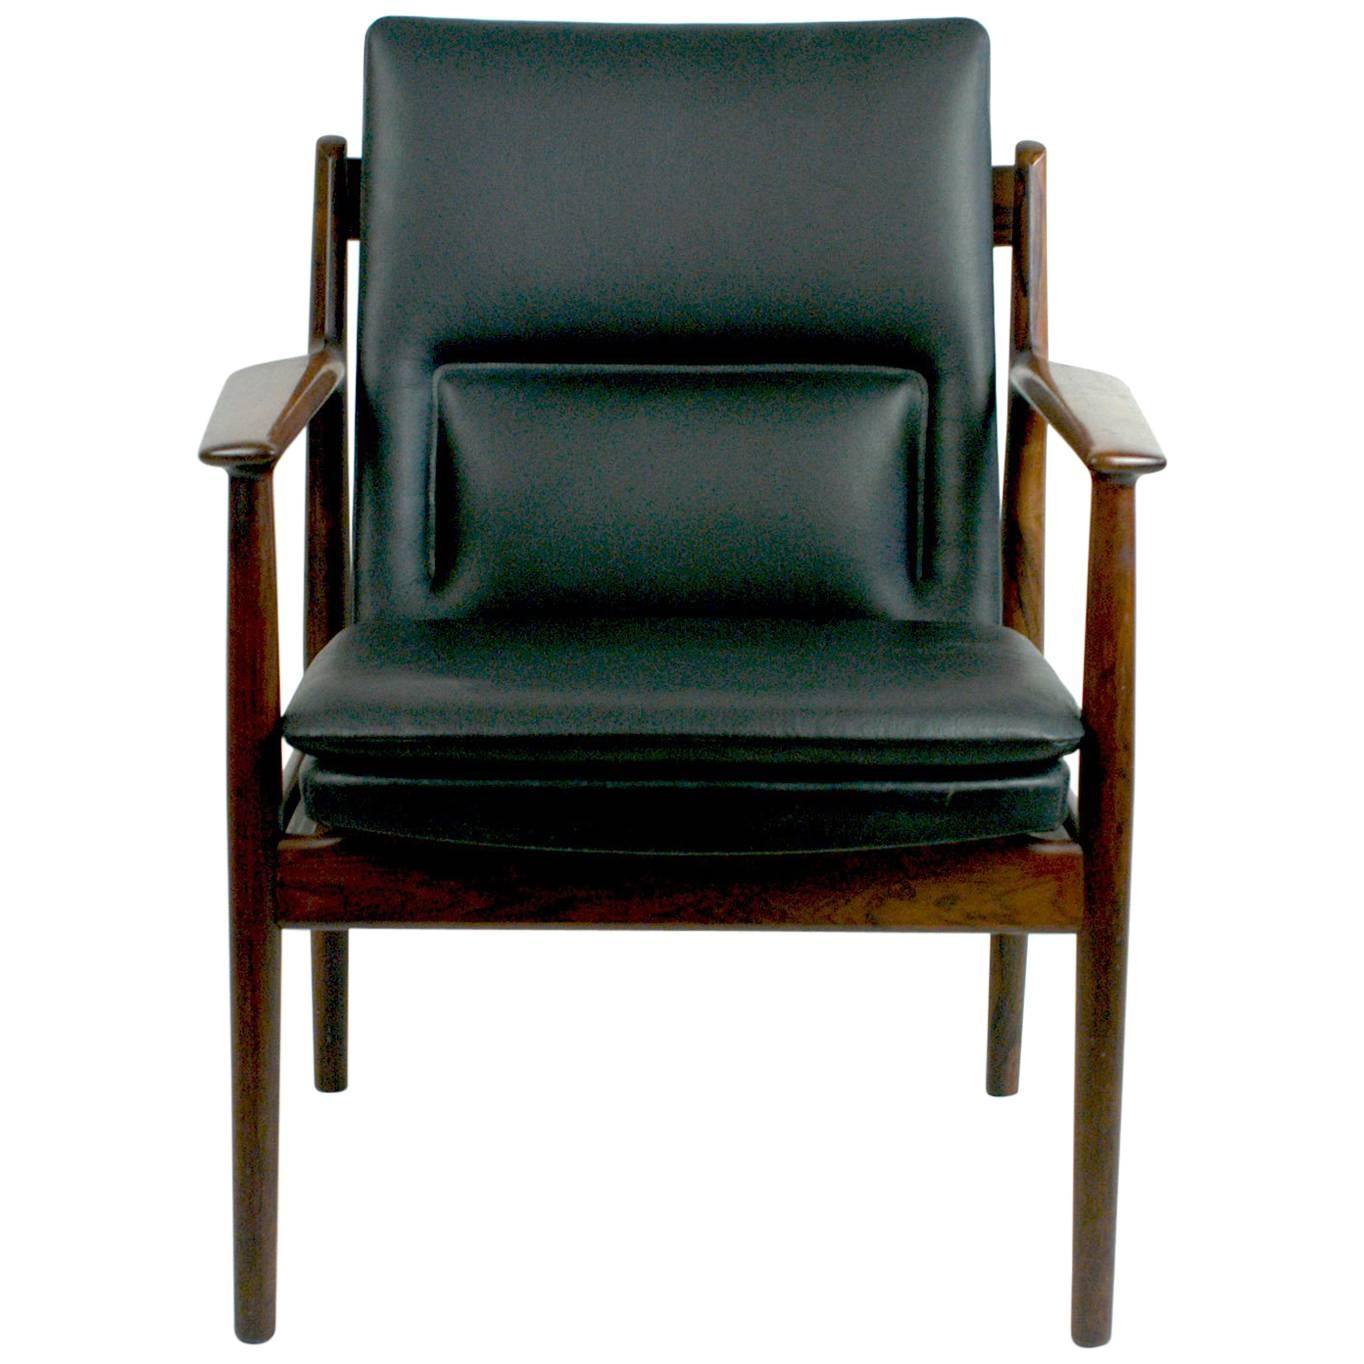 Scandinavian Modern Rosewood And Black Leather Armchair Mod. 431 By Arne  Vodder For Sale